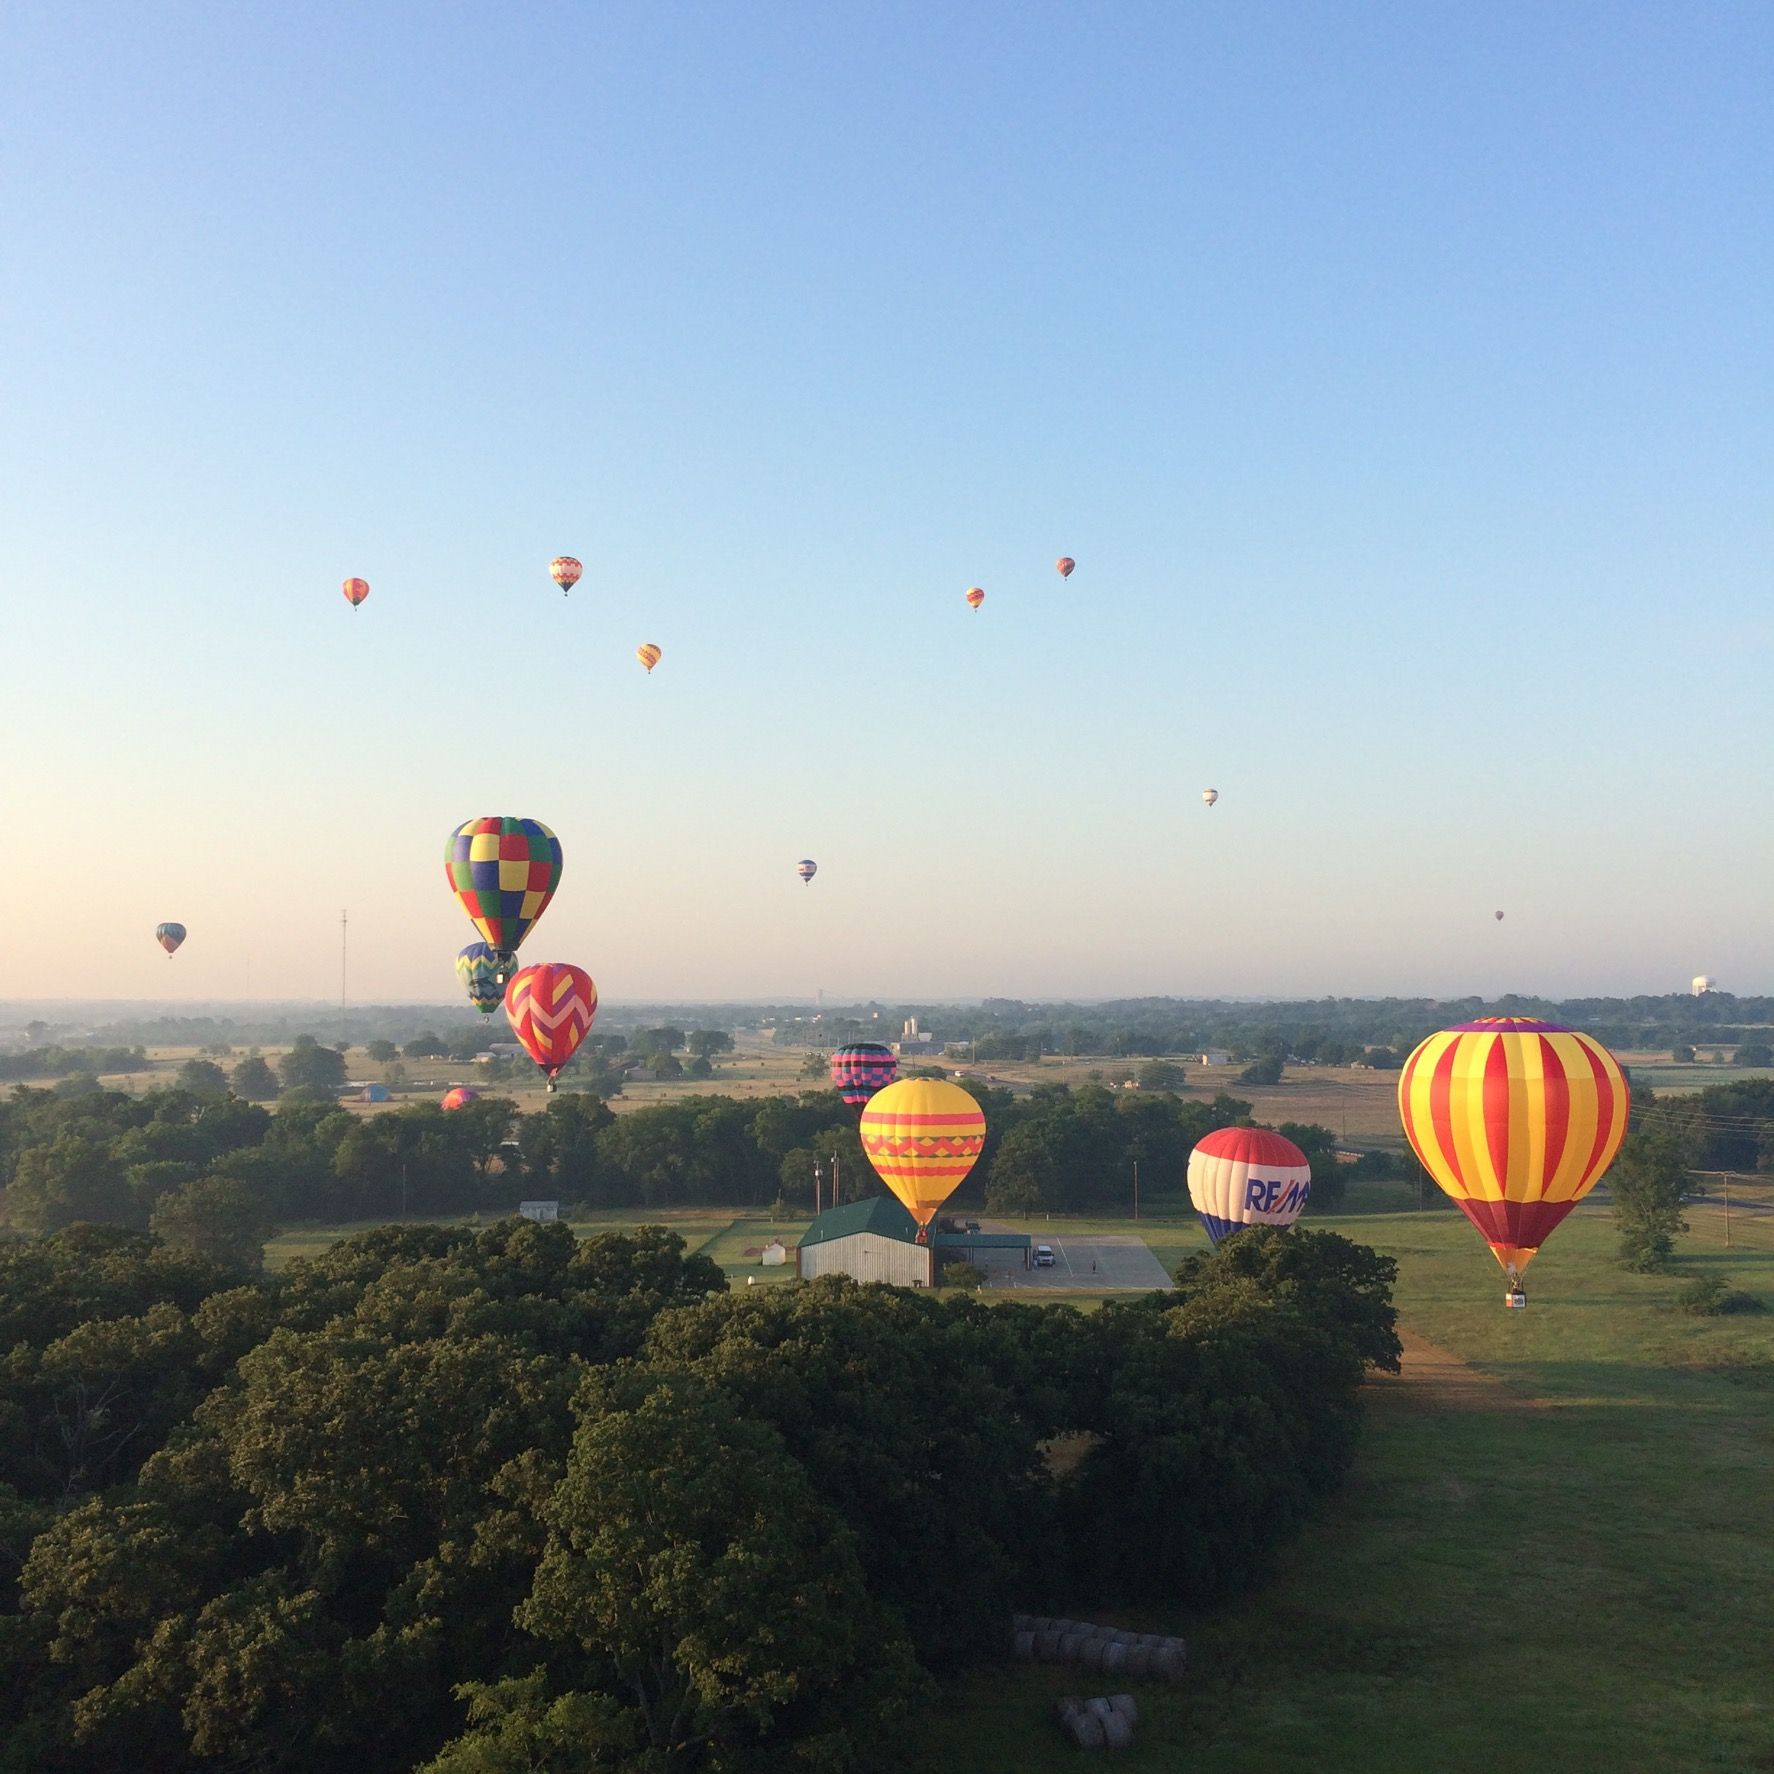 Hot Air Ballooning Hopkins County Dairy Festival in 2020